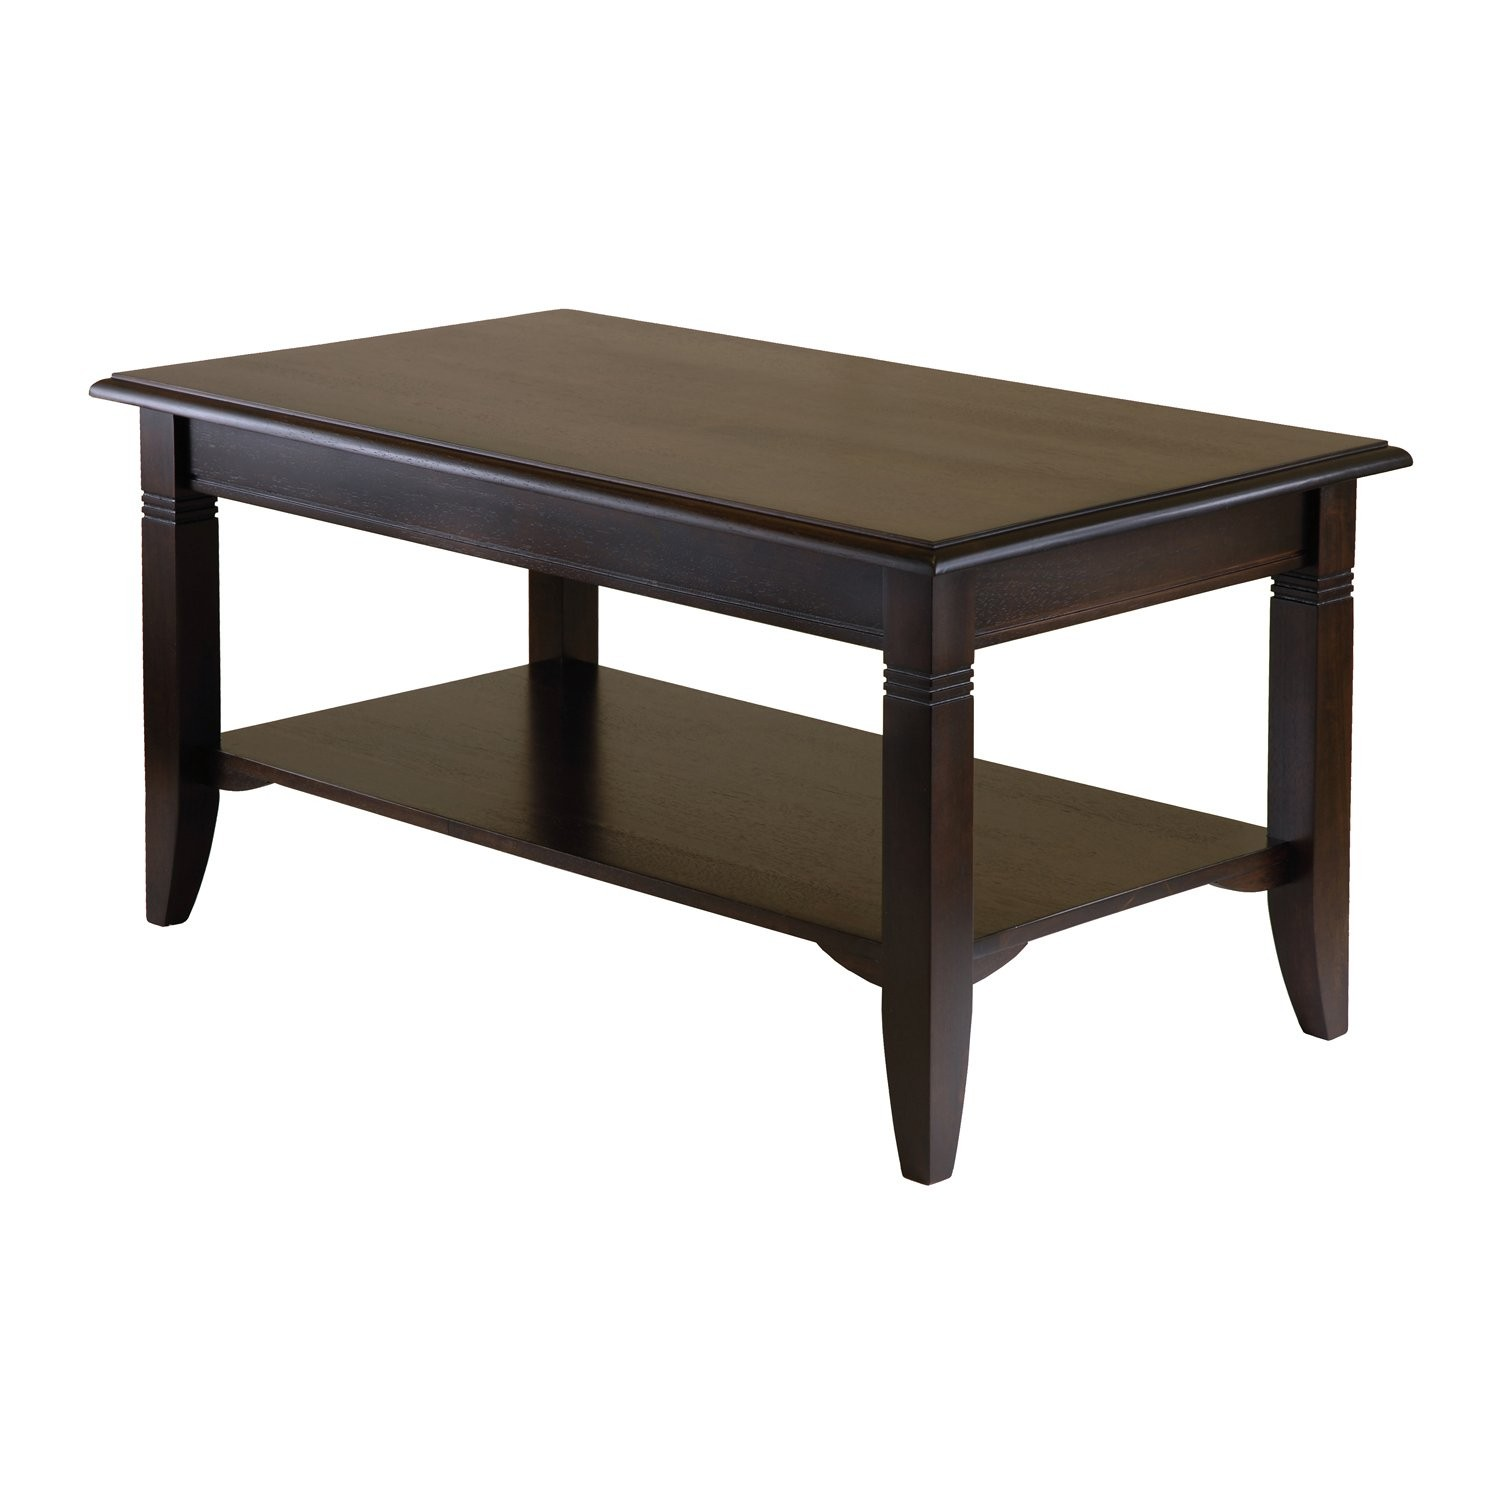 Winsome Wood 40237 Nolan Coffee Table